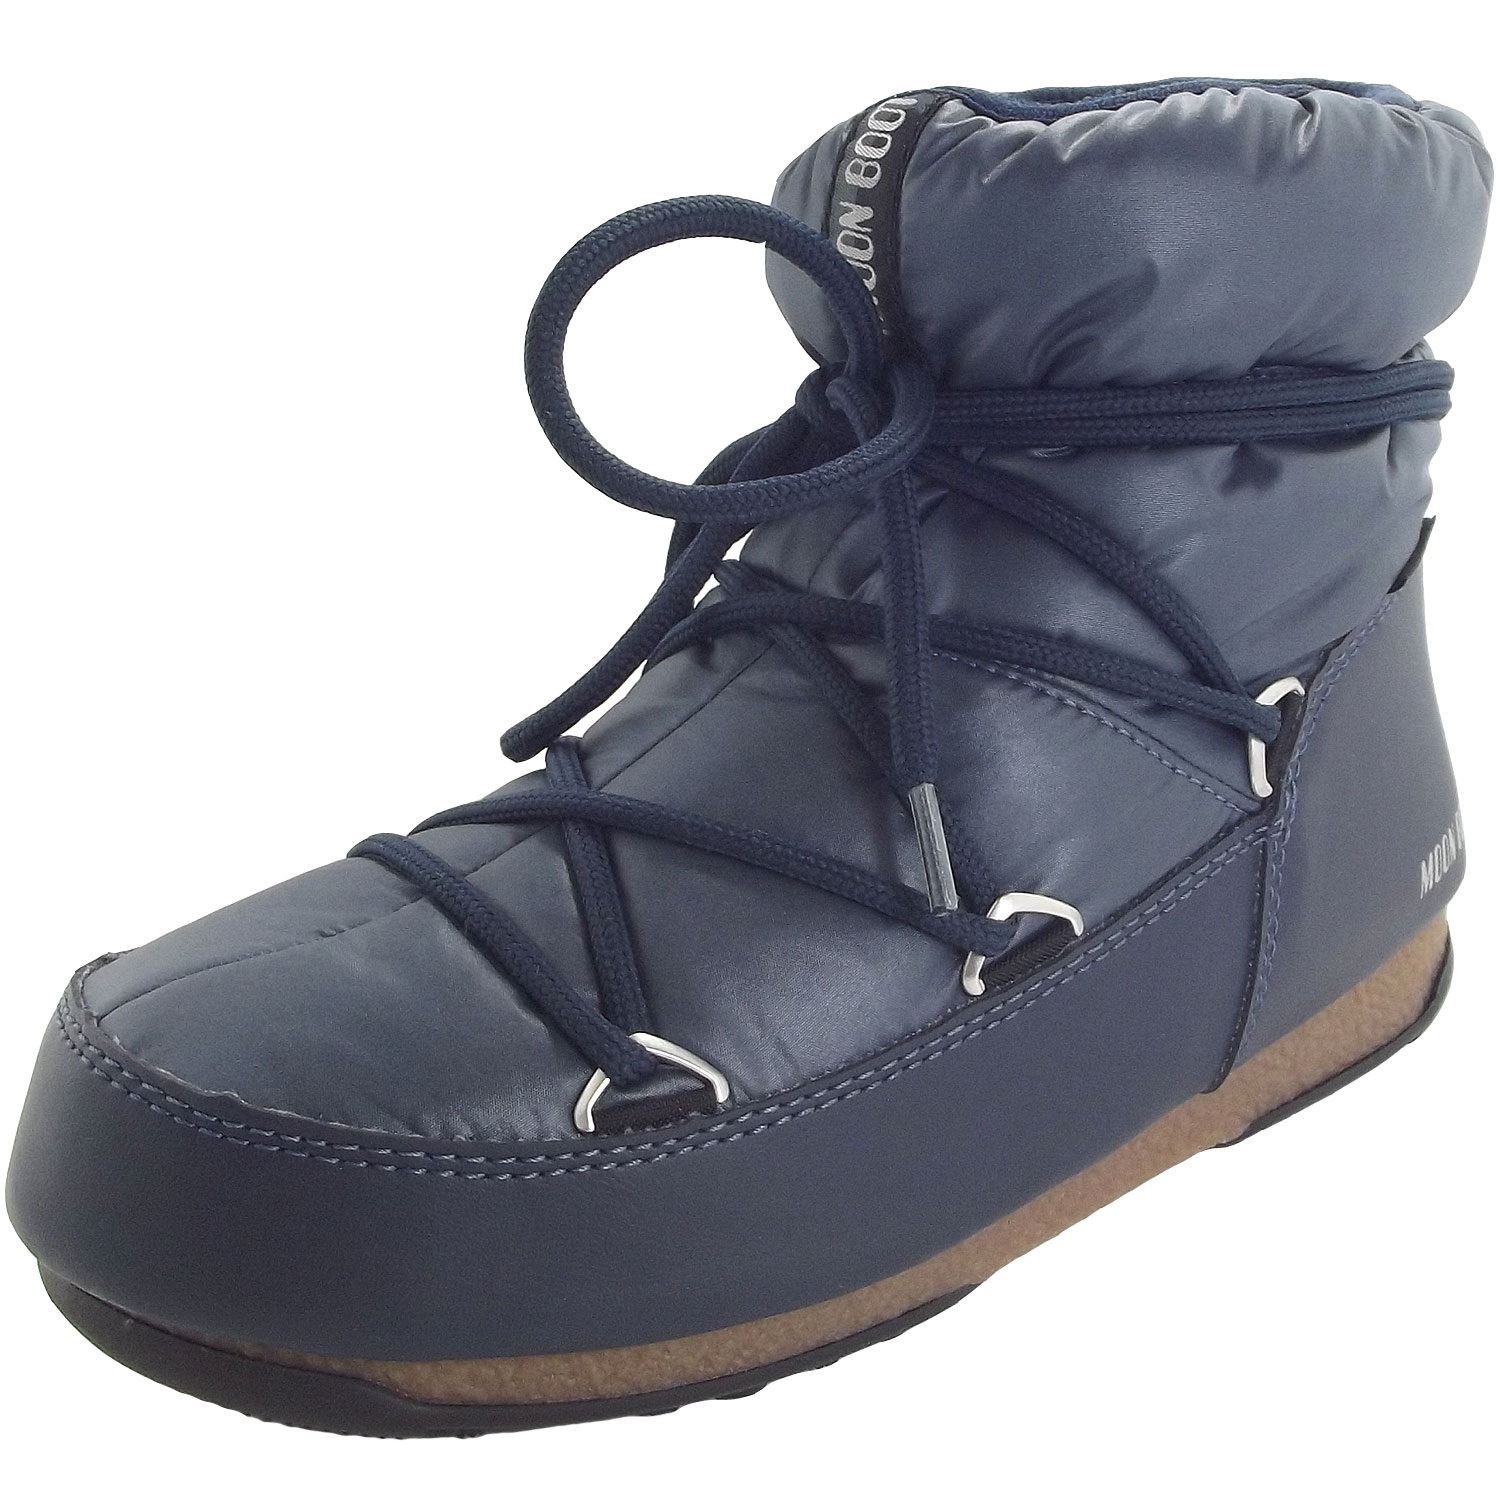 factory price cheap for sale exclusive deals Moon Boot Low Nylon WP Women Winter Ankle Boots denim blue